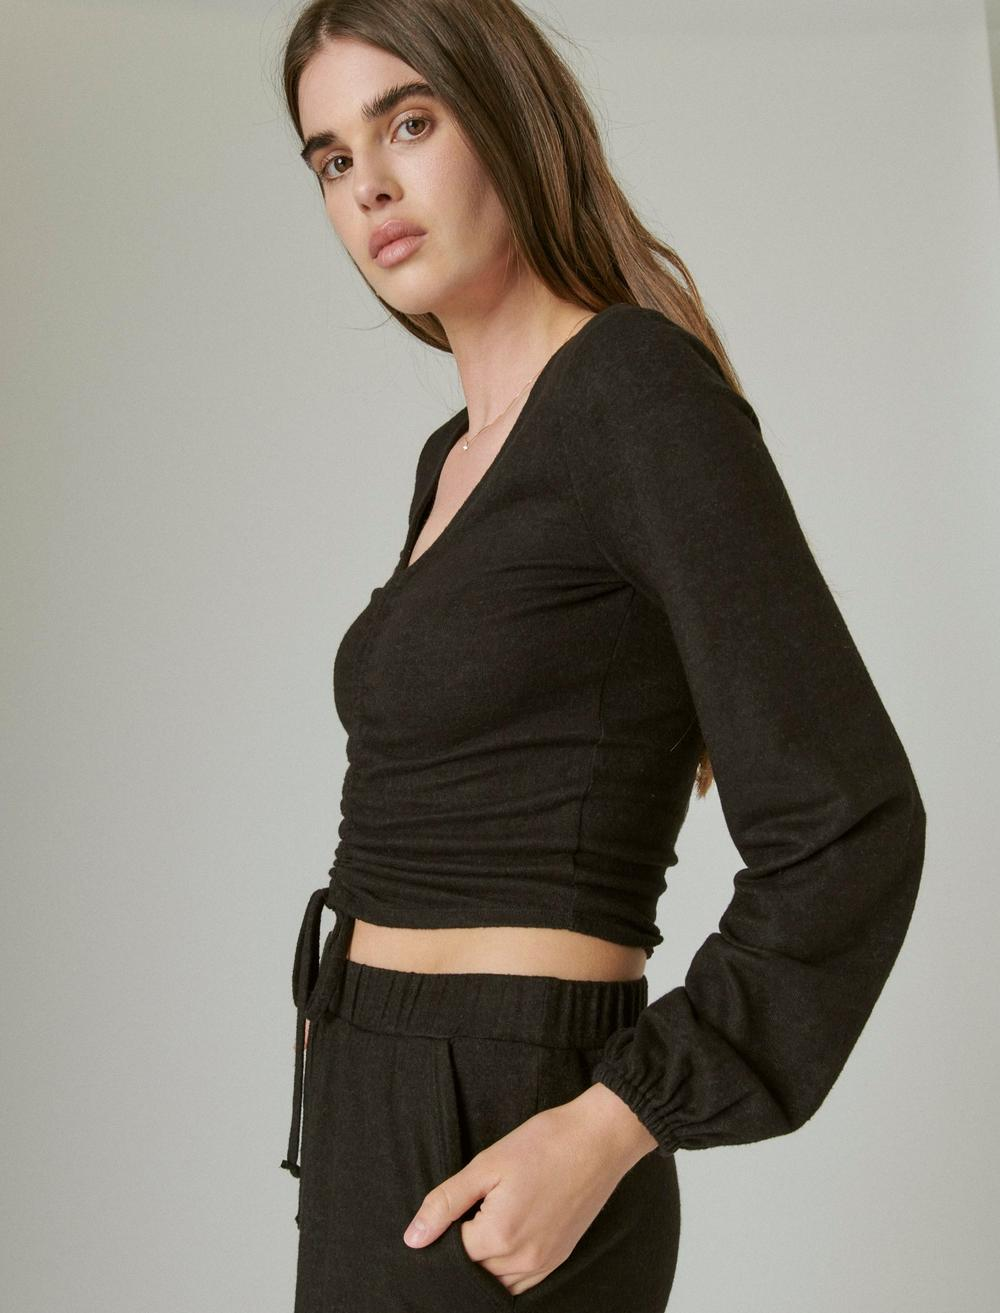 CLOUD JERSEY RIBBED RUCHED TOP, image 3